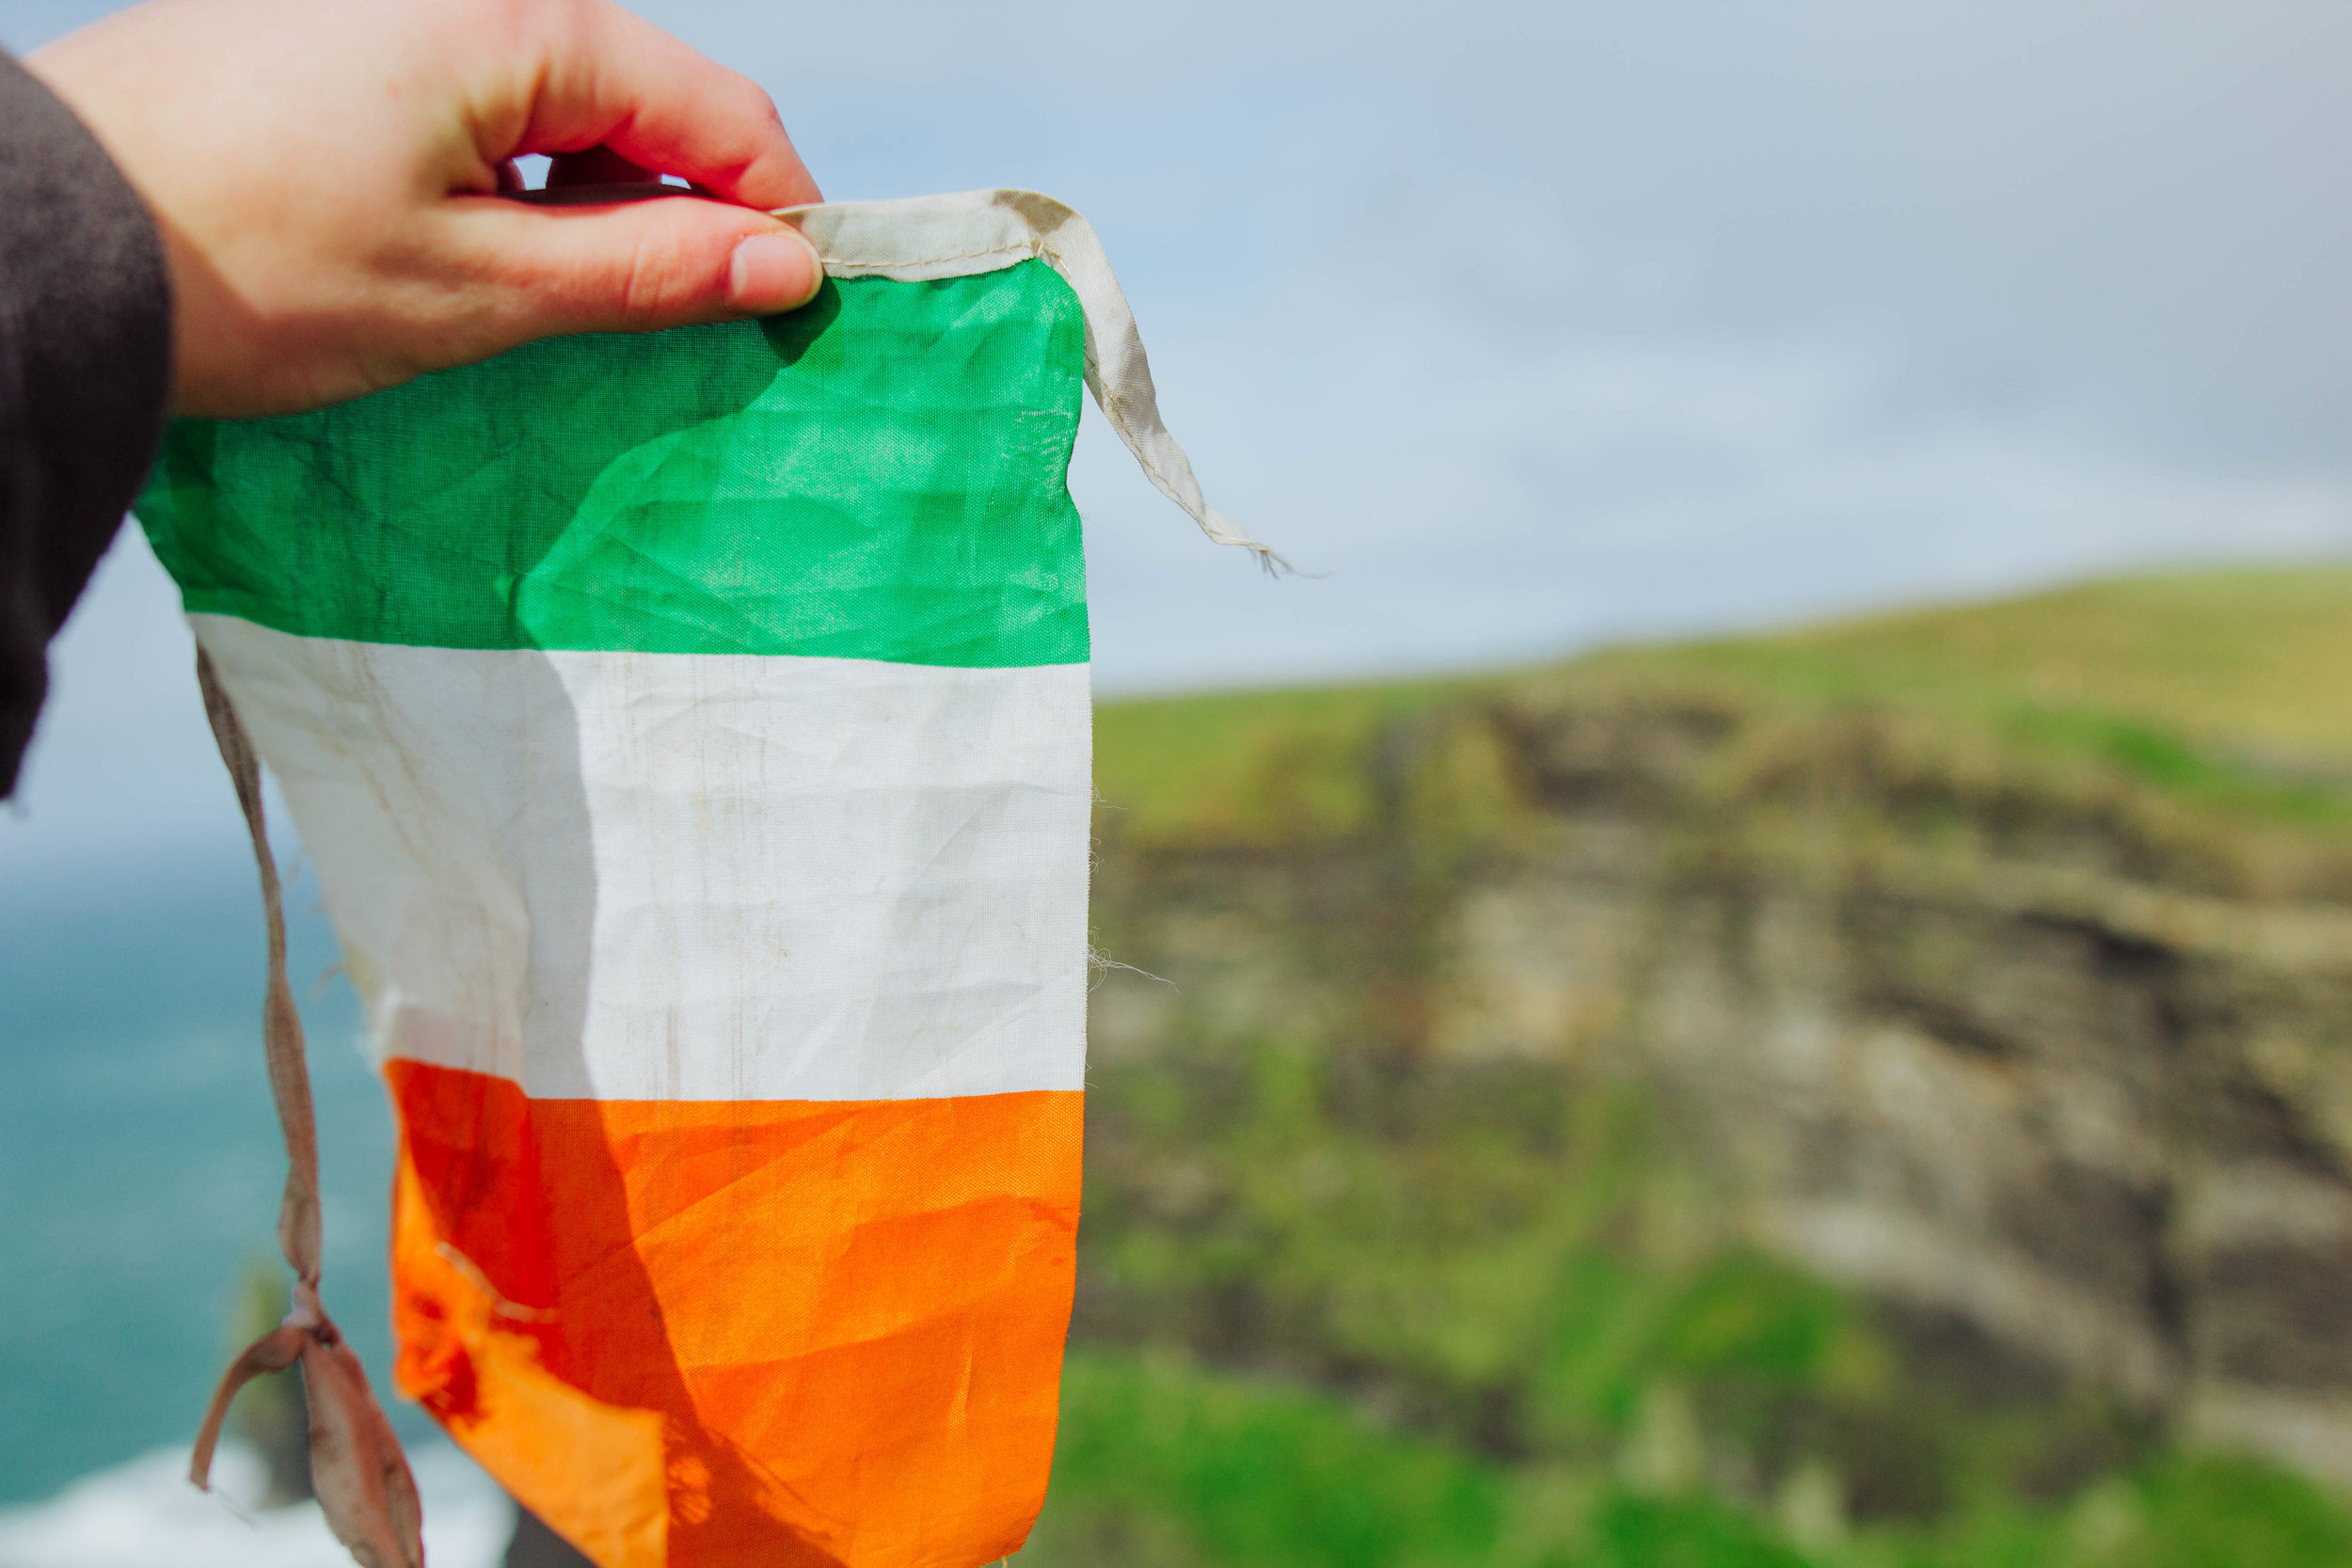 Yay Ireland and acquired flags.